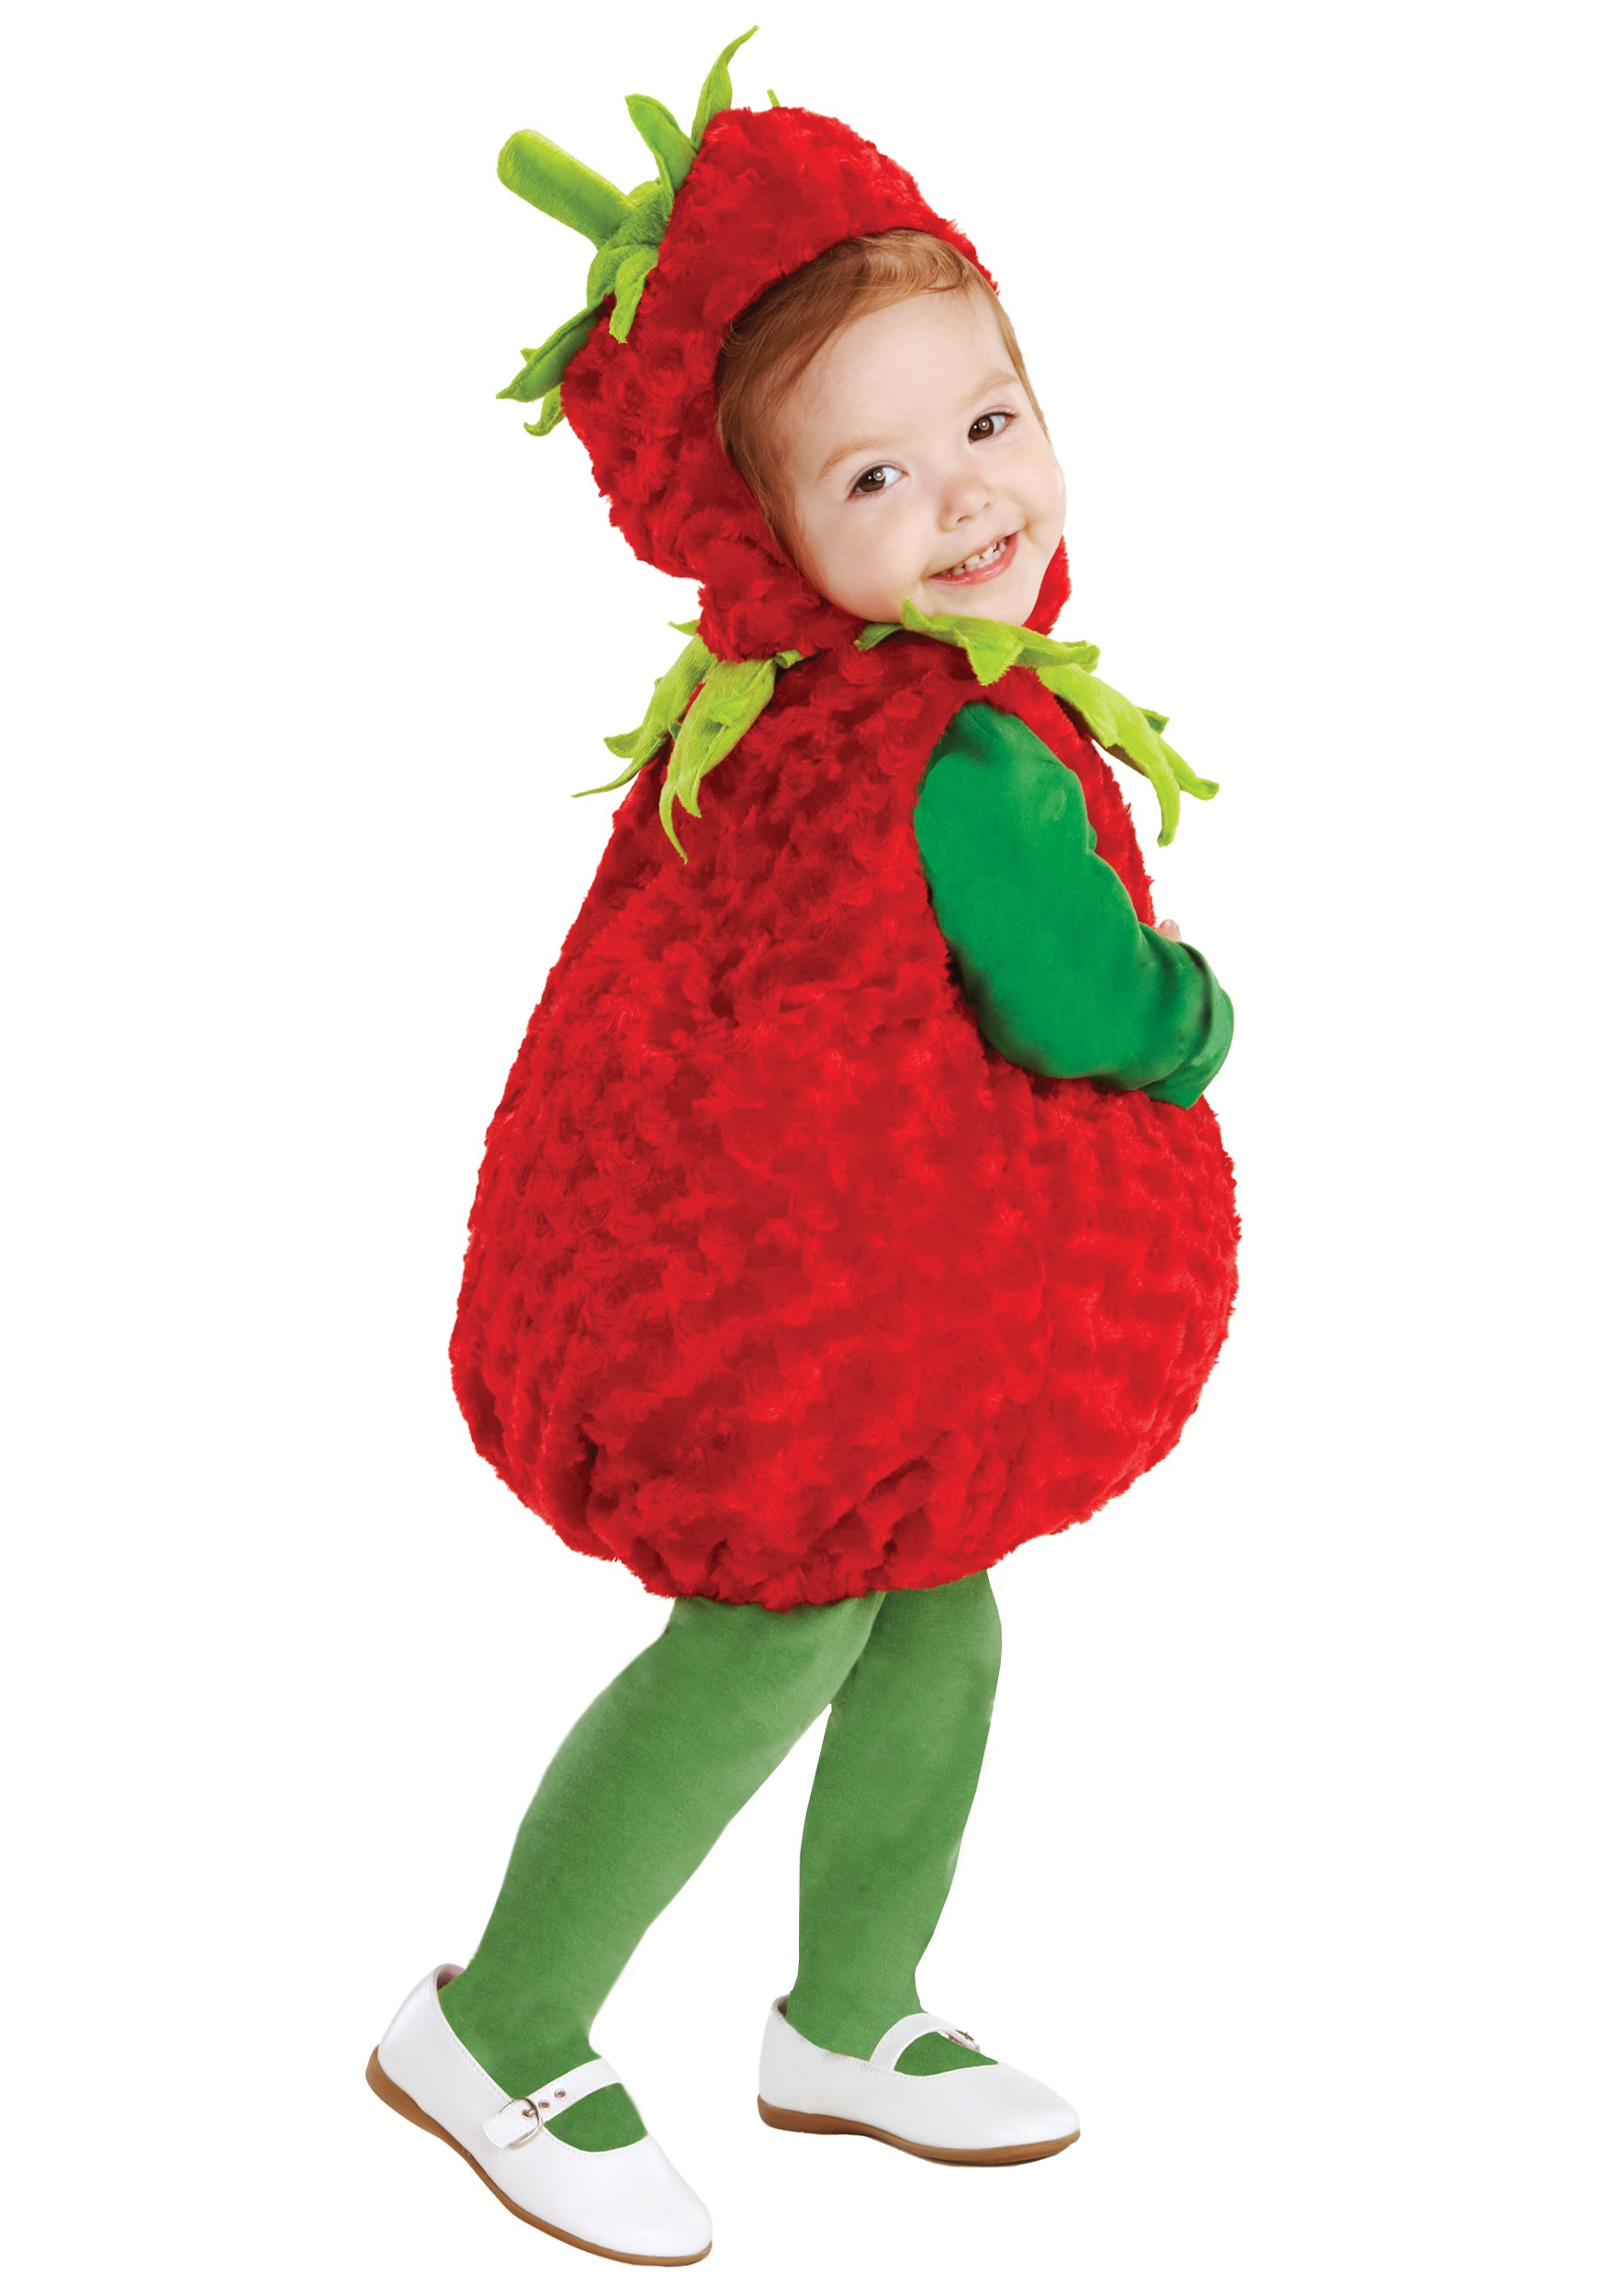 With this plush red costume, your daughter will be the cutest strawberry in the field.